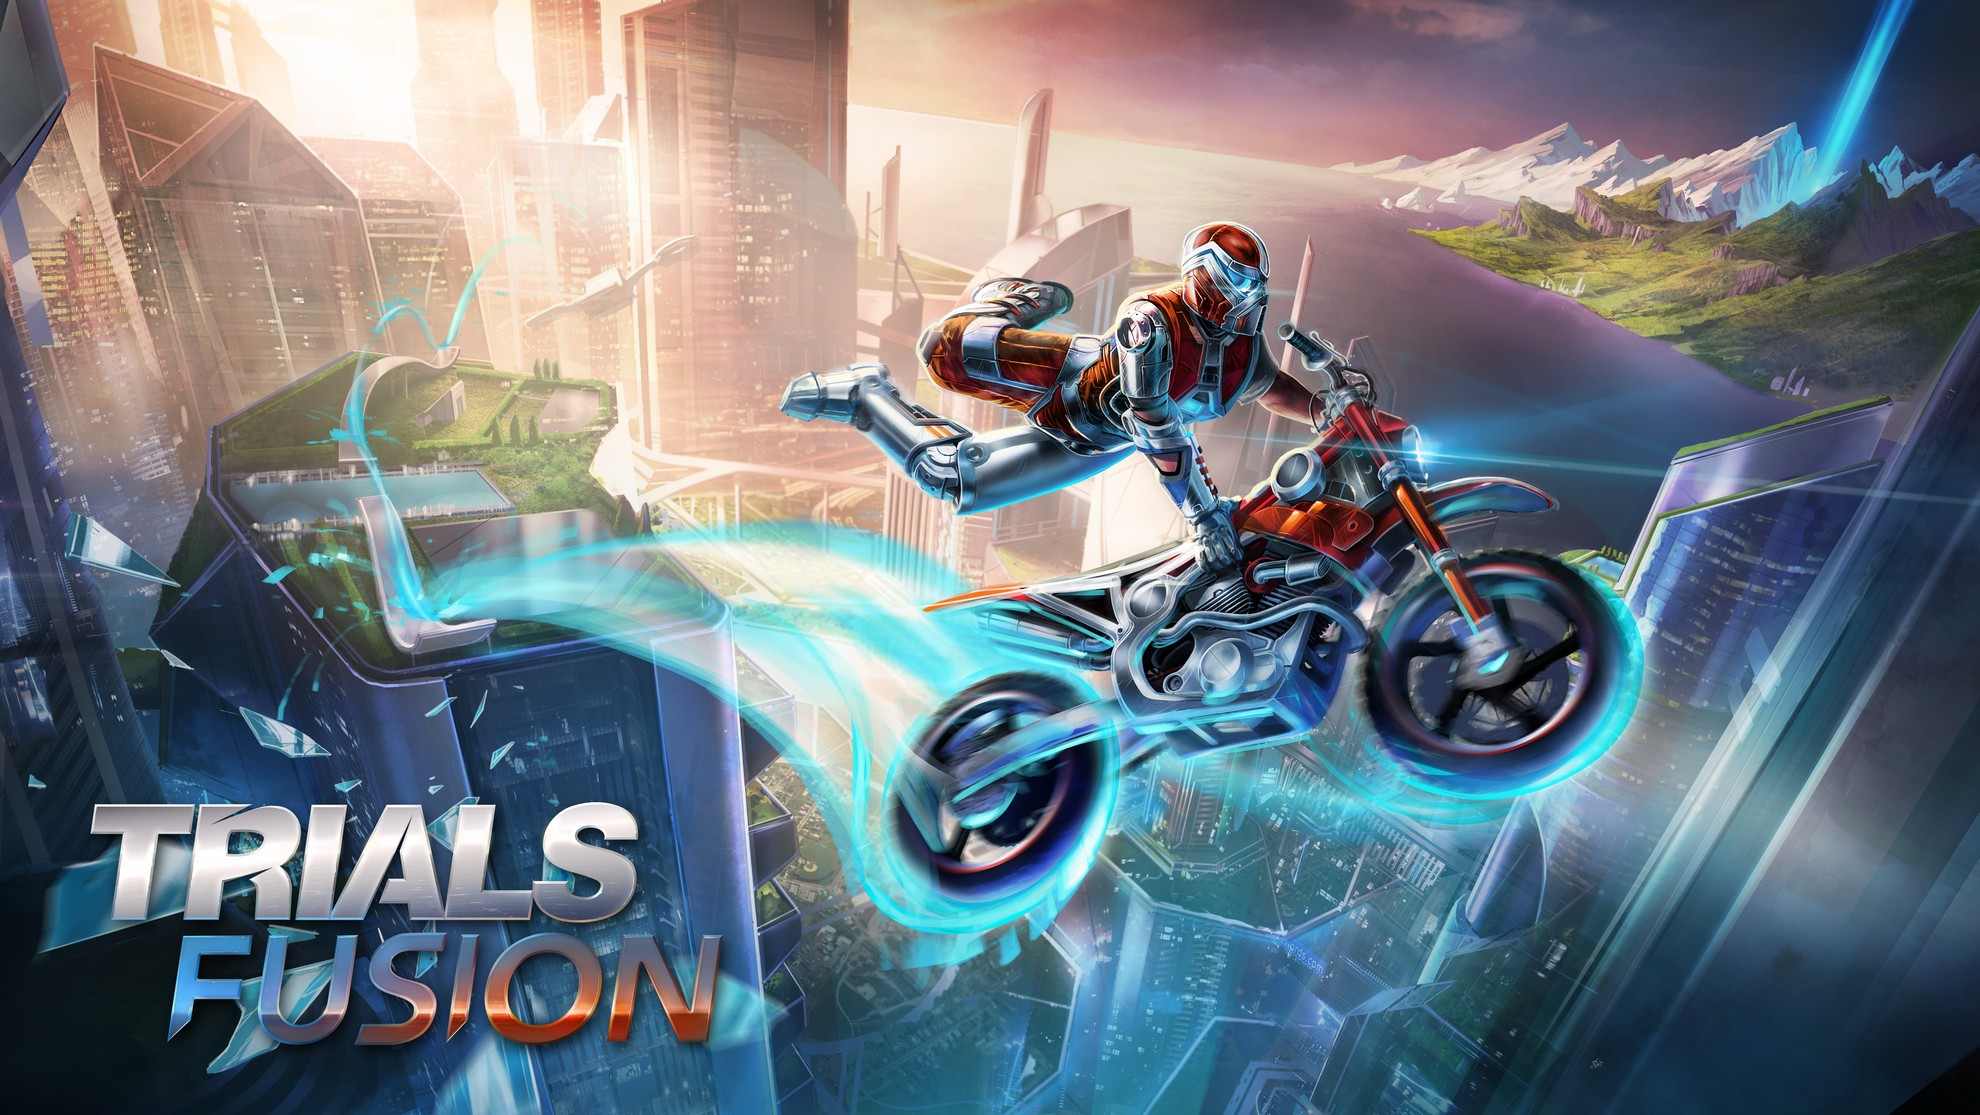 Trials Fusion tumbling onto a system near you April 18th